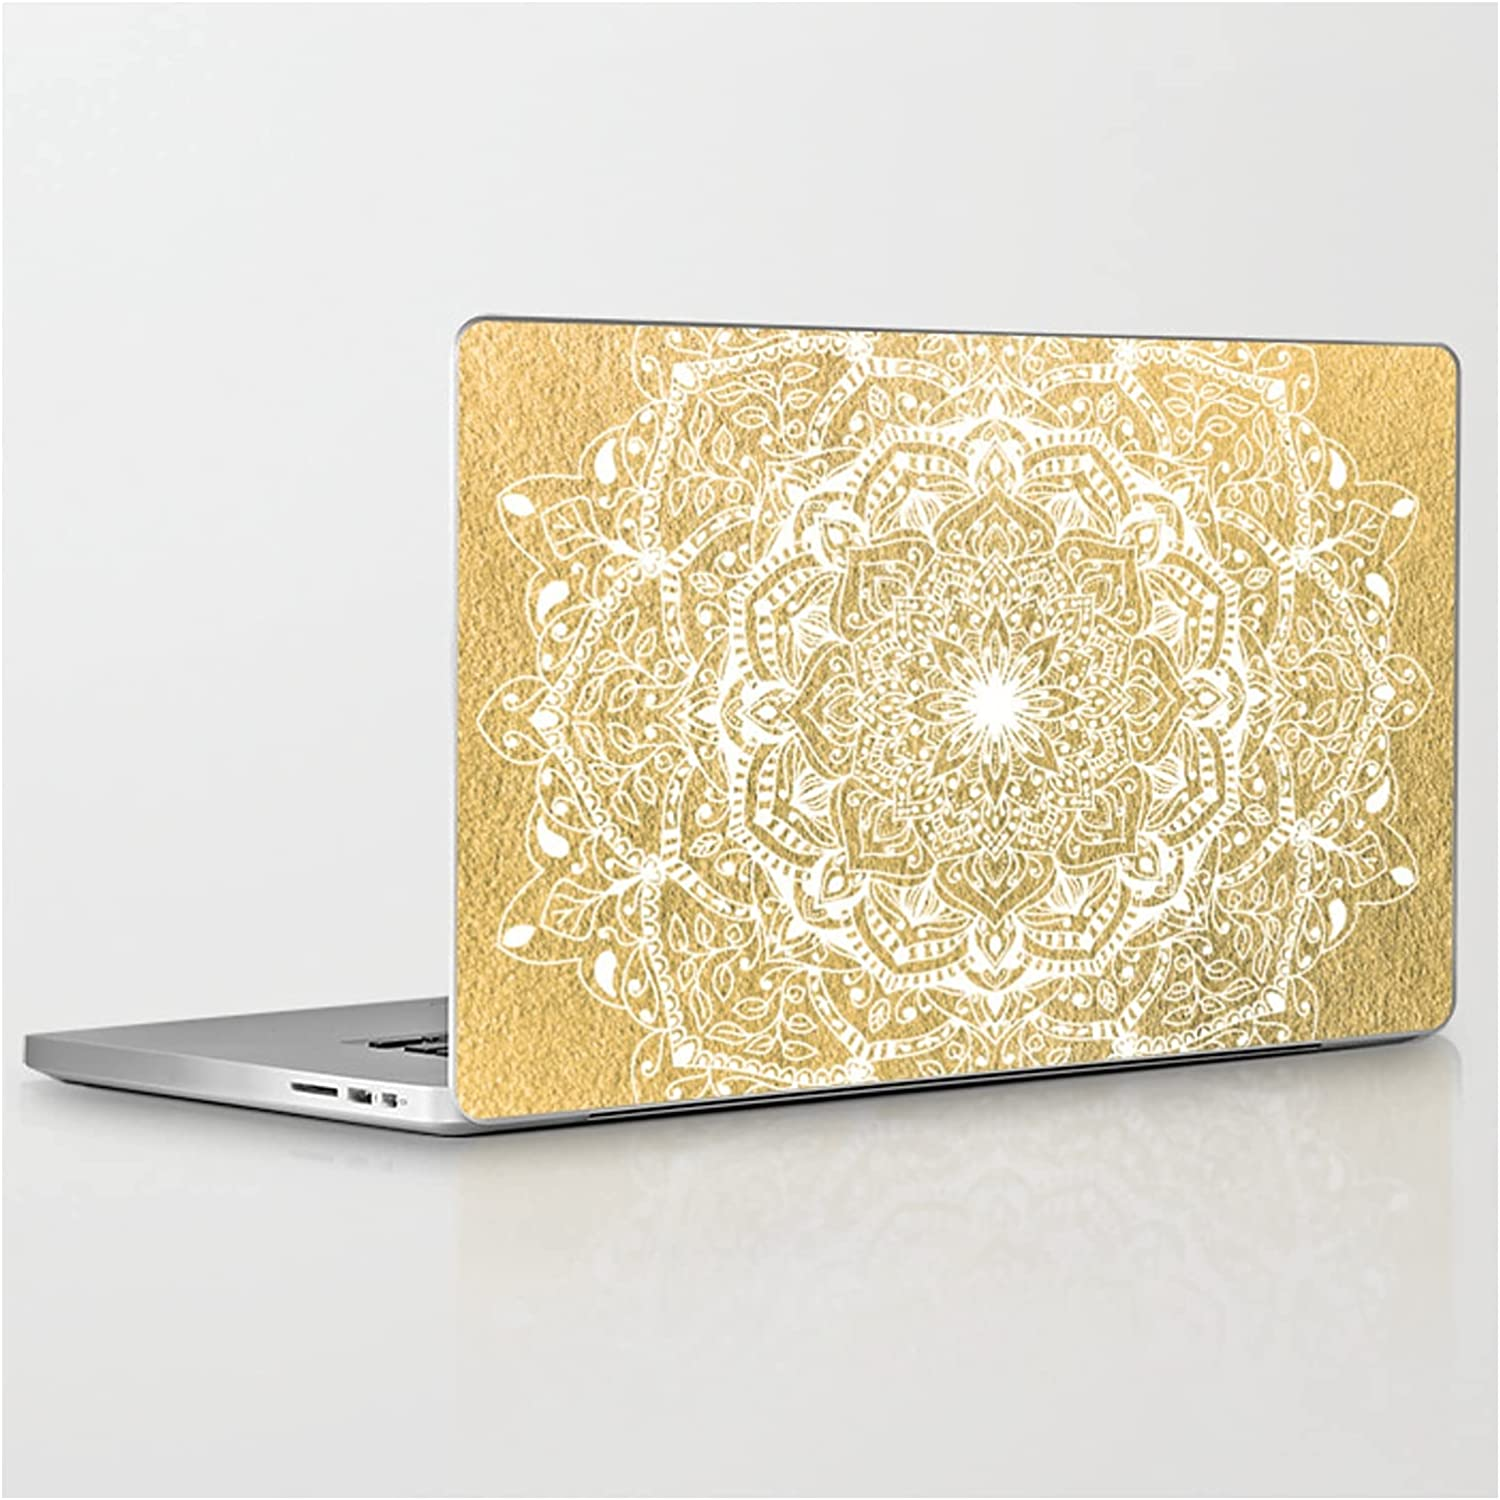 Nature Details Mandala in Gold by on Skin Compatible Las Vegas Mall Nika Laptop Limited time cheap sale